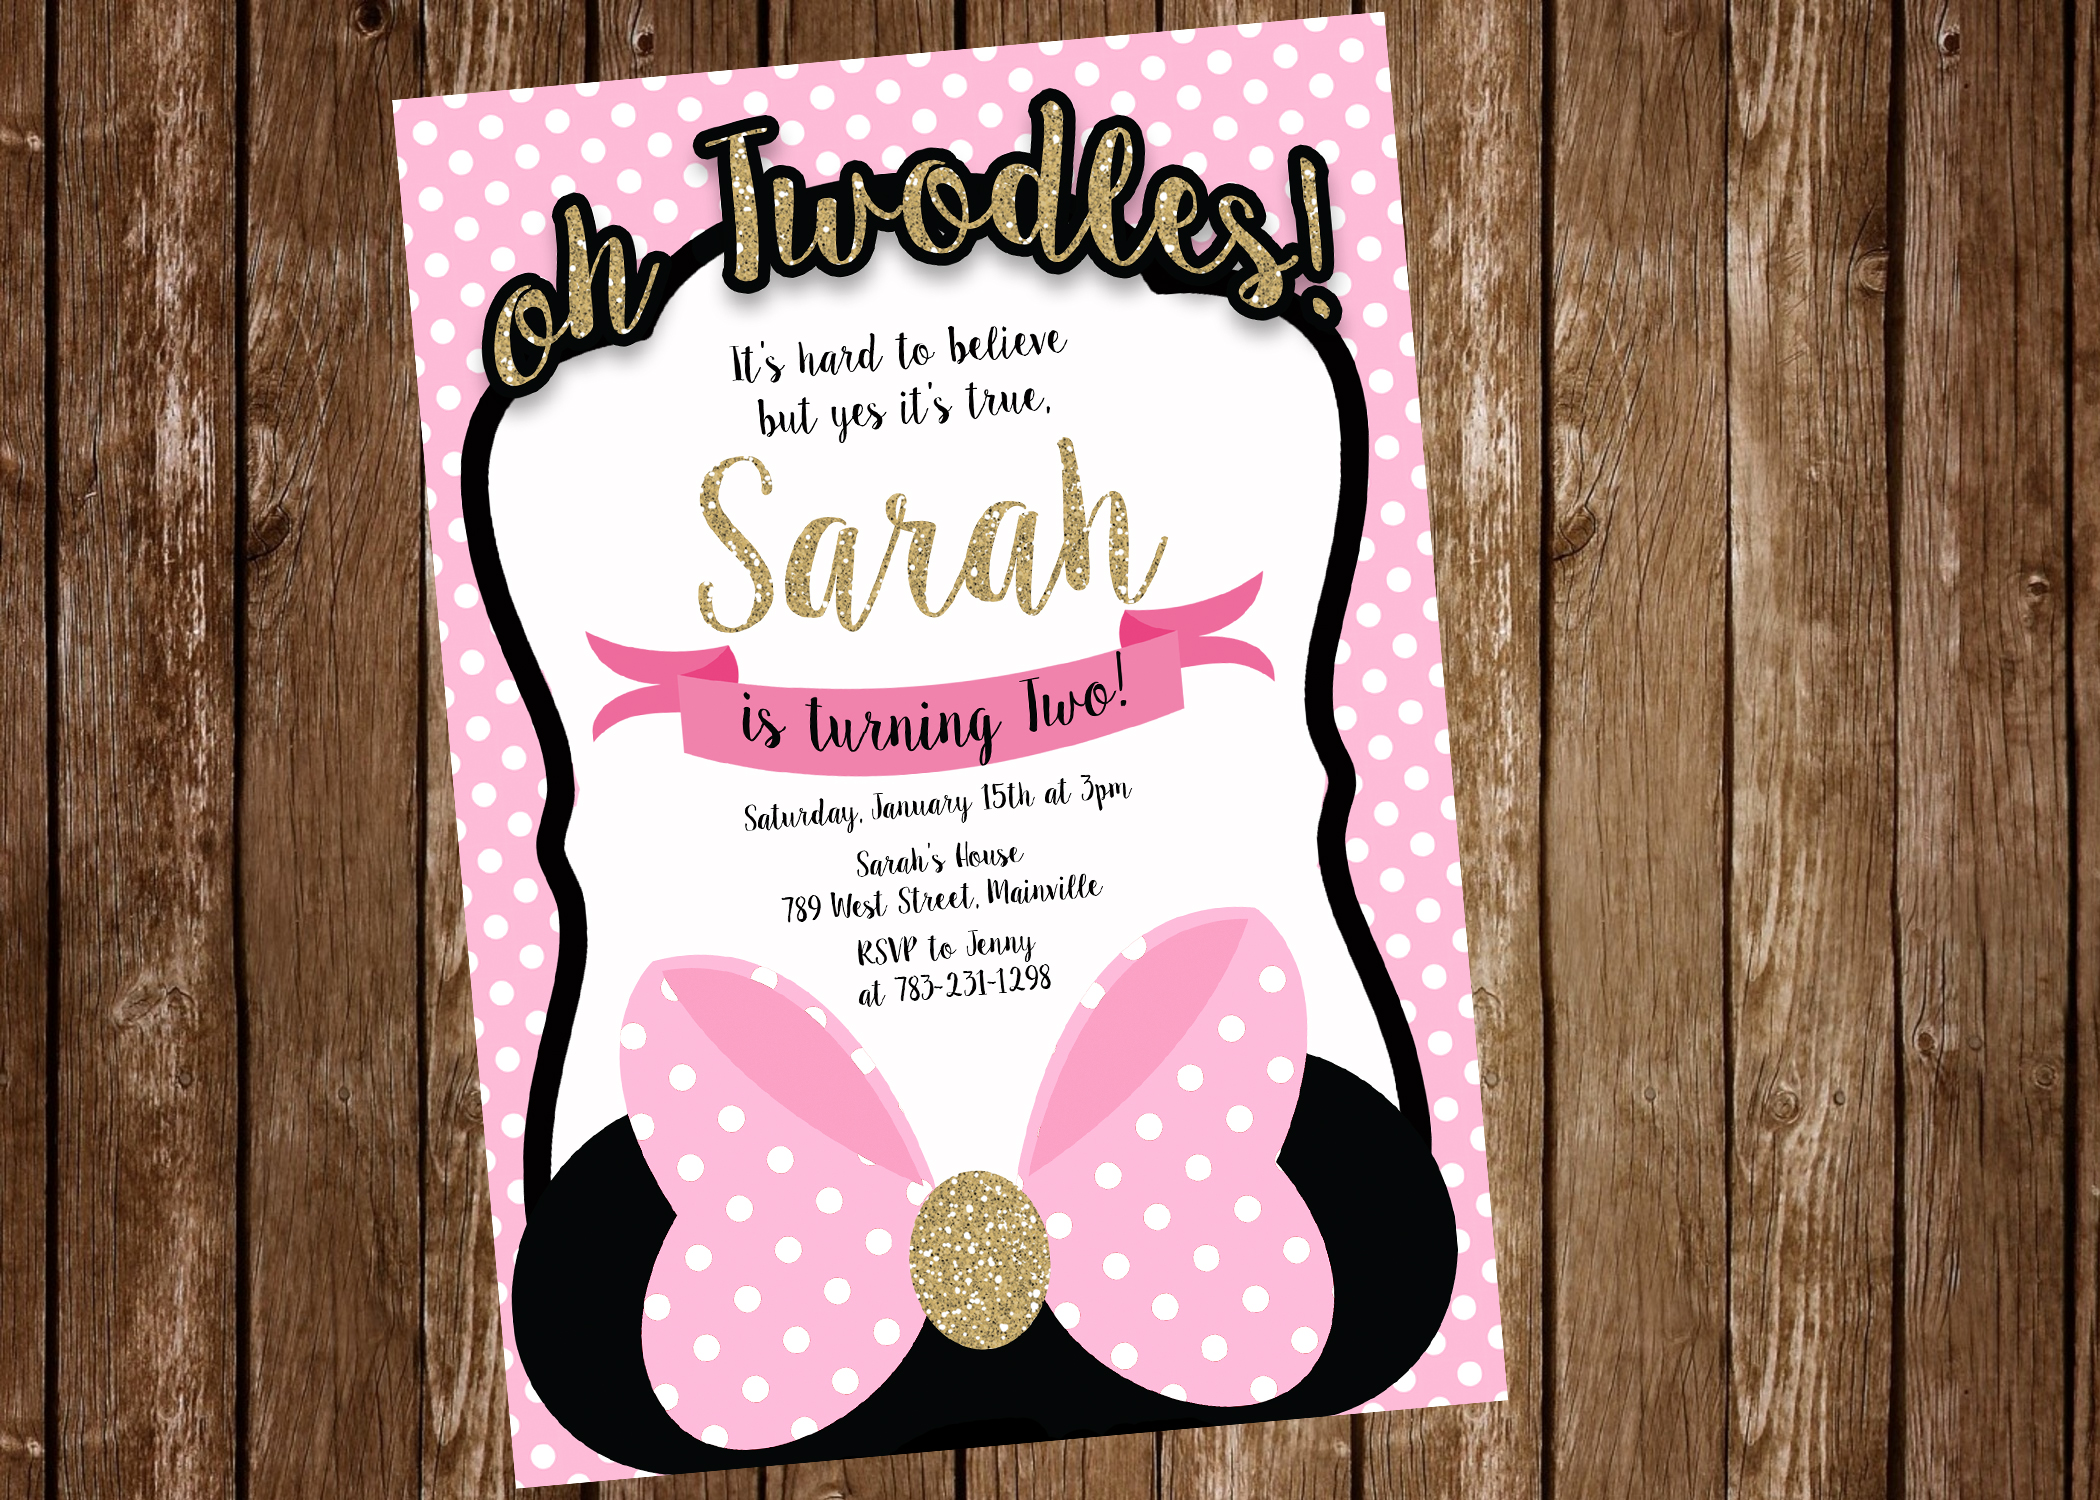 Minnie mouse 2nd birthday two odles birthday party invitation minnie mouse 2nd birthday two odles birthday party invitation digital or filmwisefo